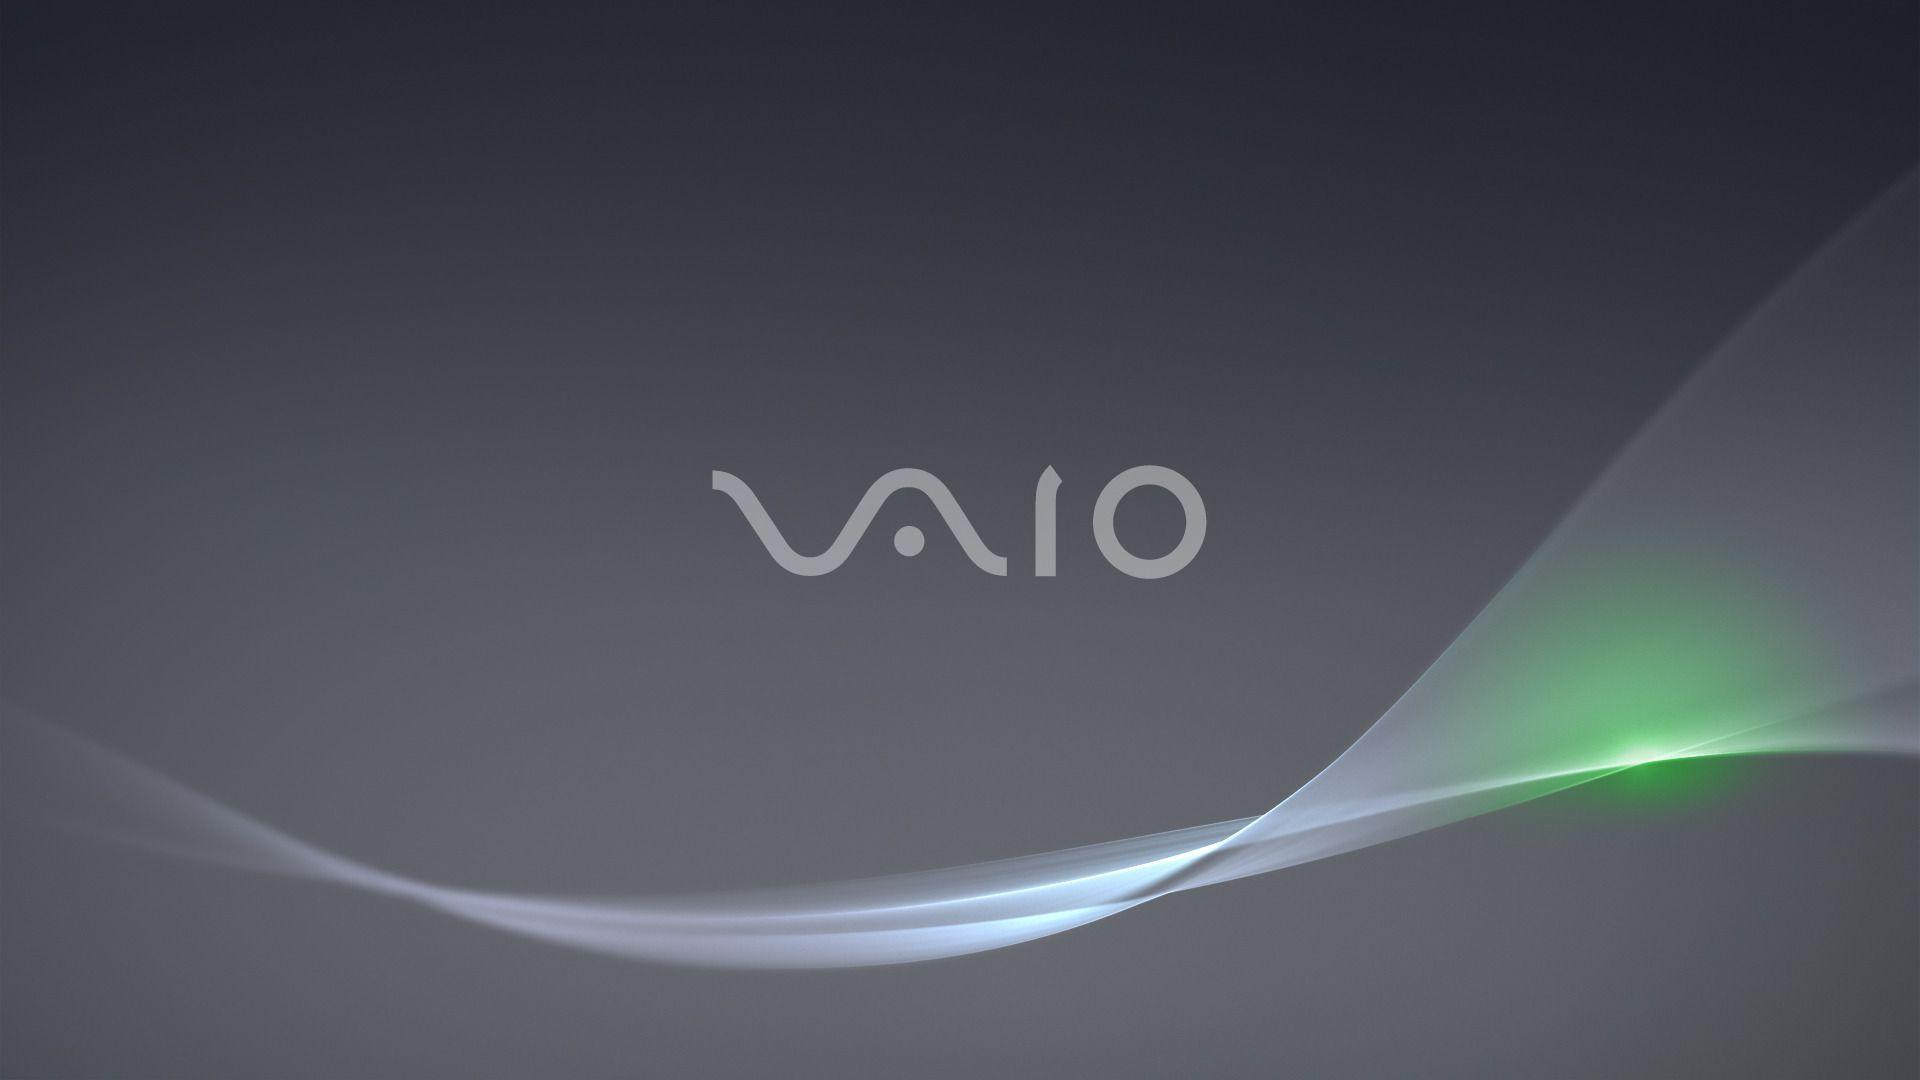 Vaio Background